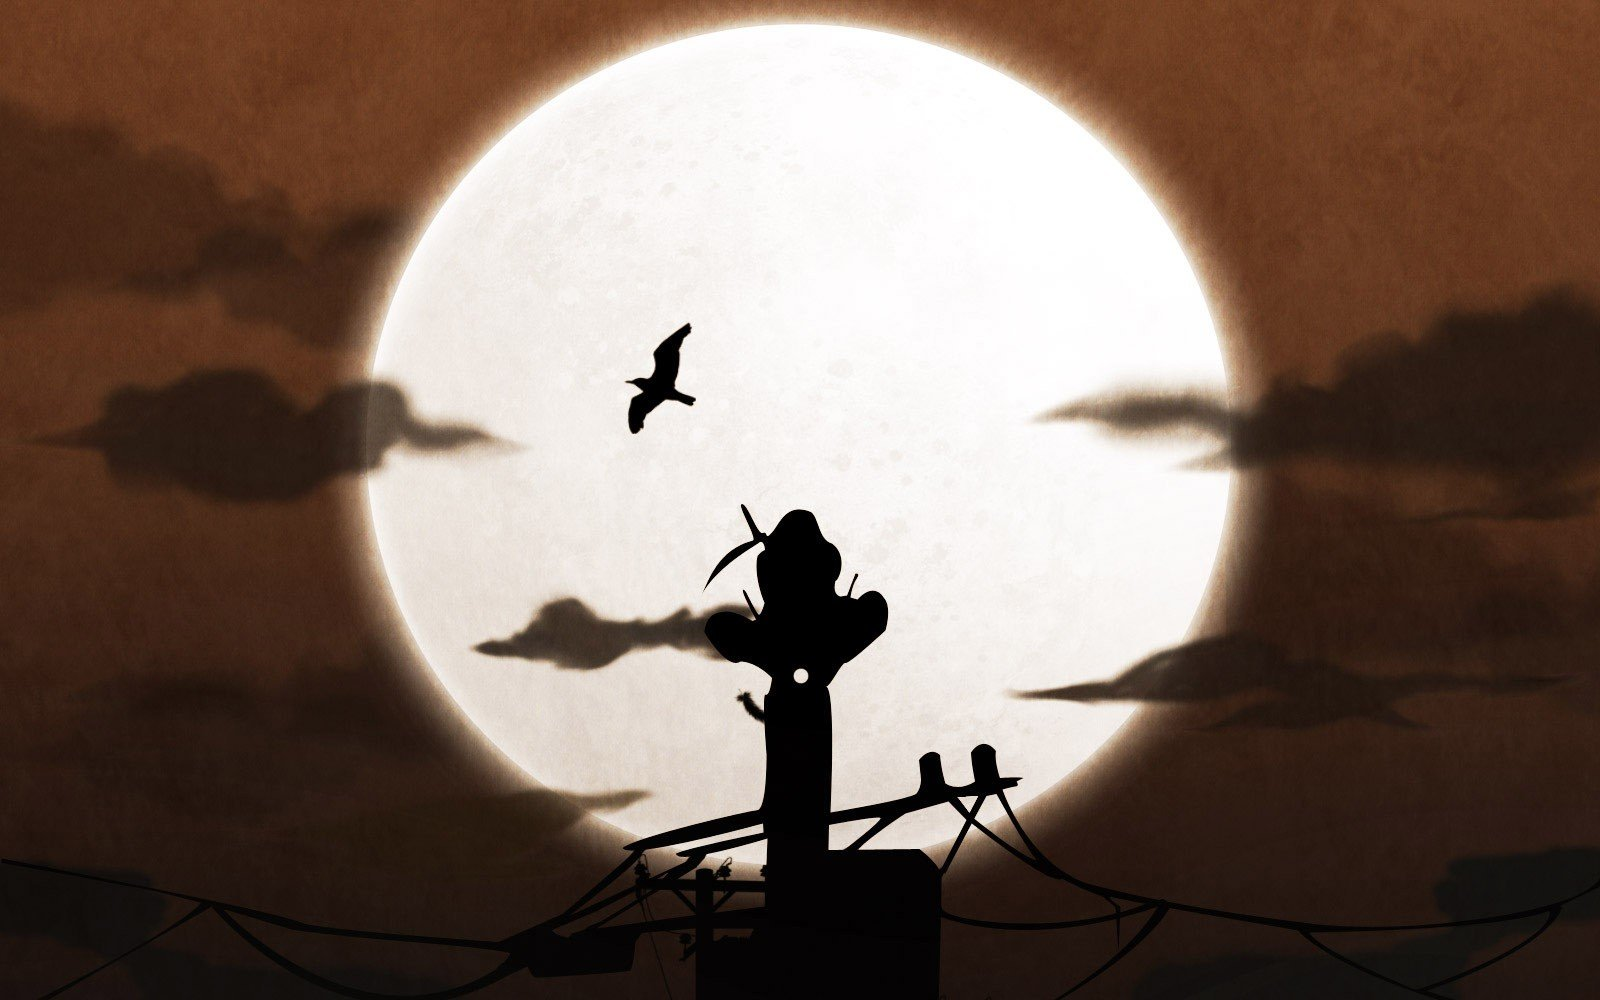 Uchiha Itachi Silhouette Moon Hd Wallpapers Desktop And Mobile Images Photos